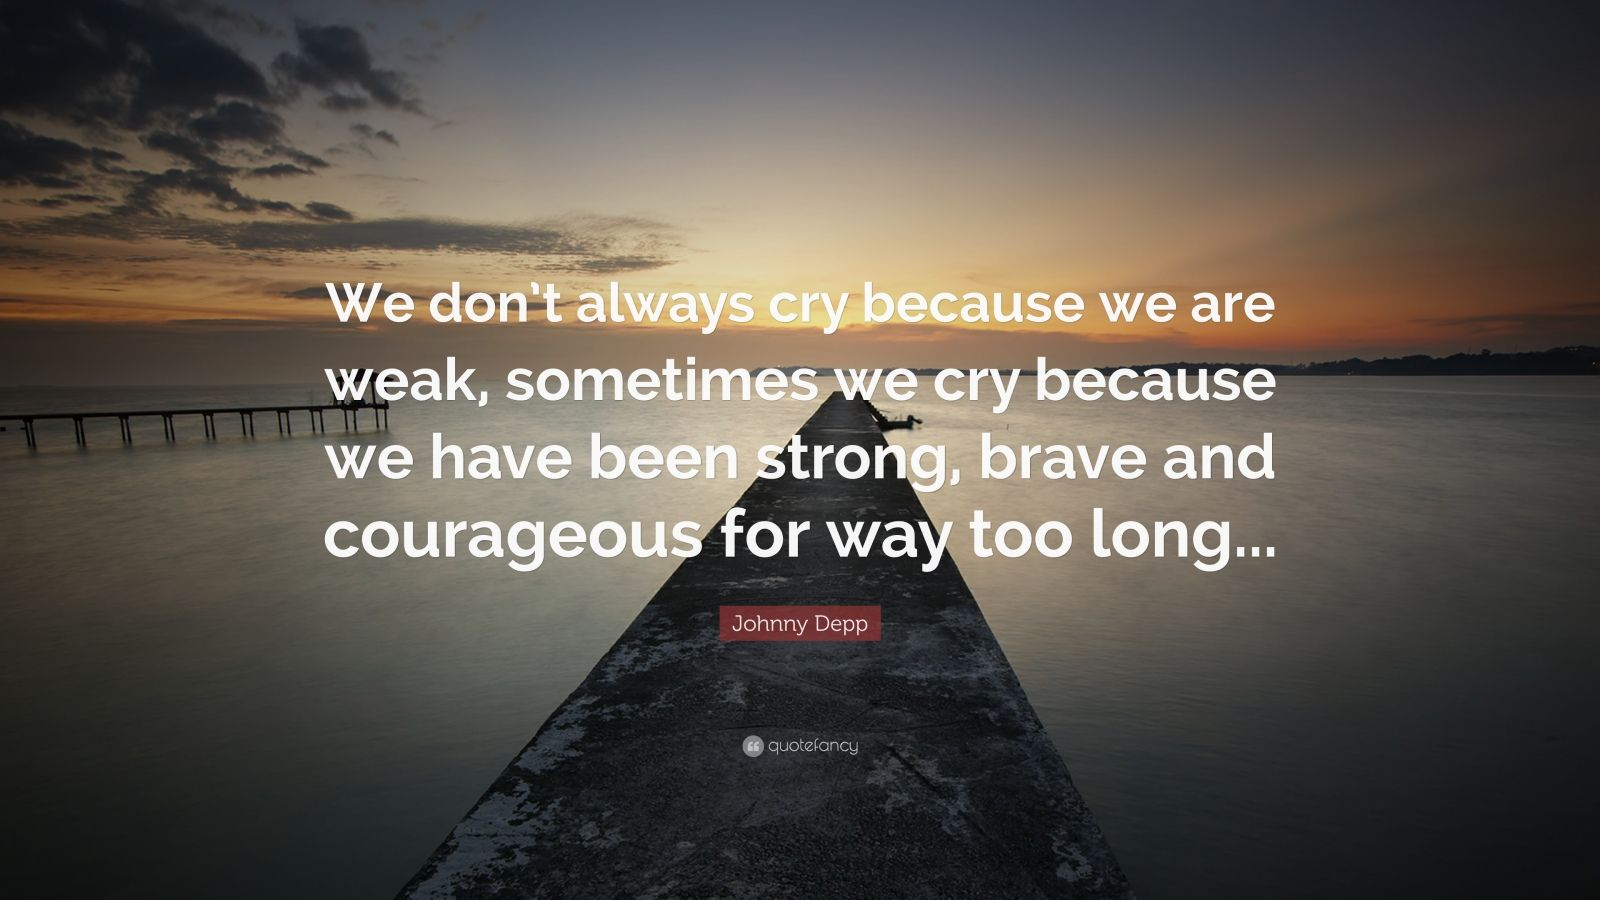 """Johnny Depp Quote: """"We don't always cry because we are weak, sometimes we cry because we have been strong, brave and courageous for way too long..."""""""